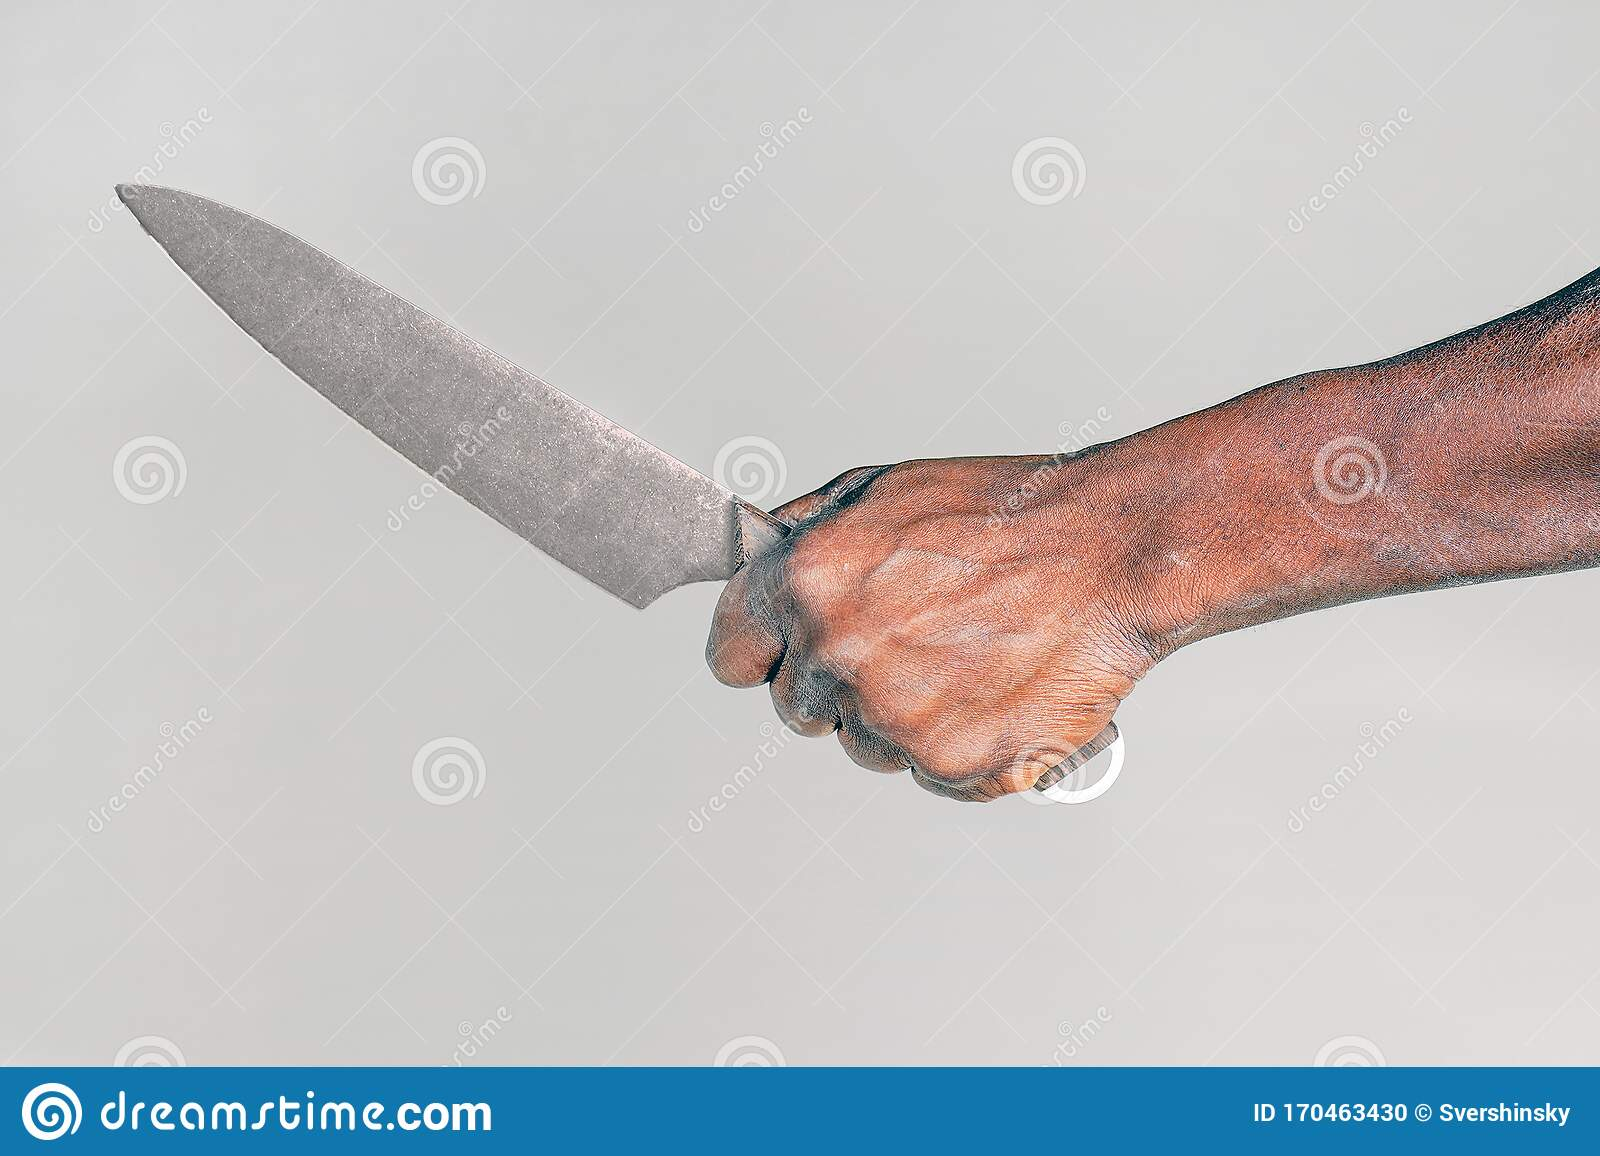 Kitchen Knife In A Hand Big Kitchen Knife In African Man Hand Stock Photo Image Of Murderer Fear 170463430